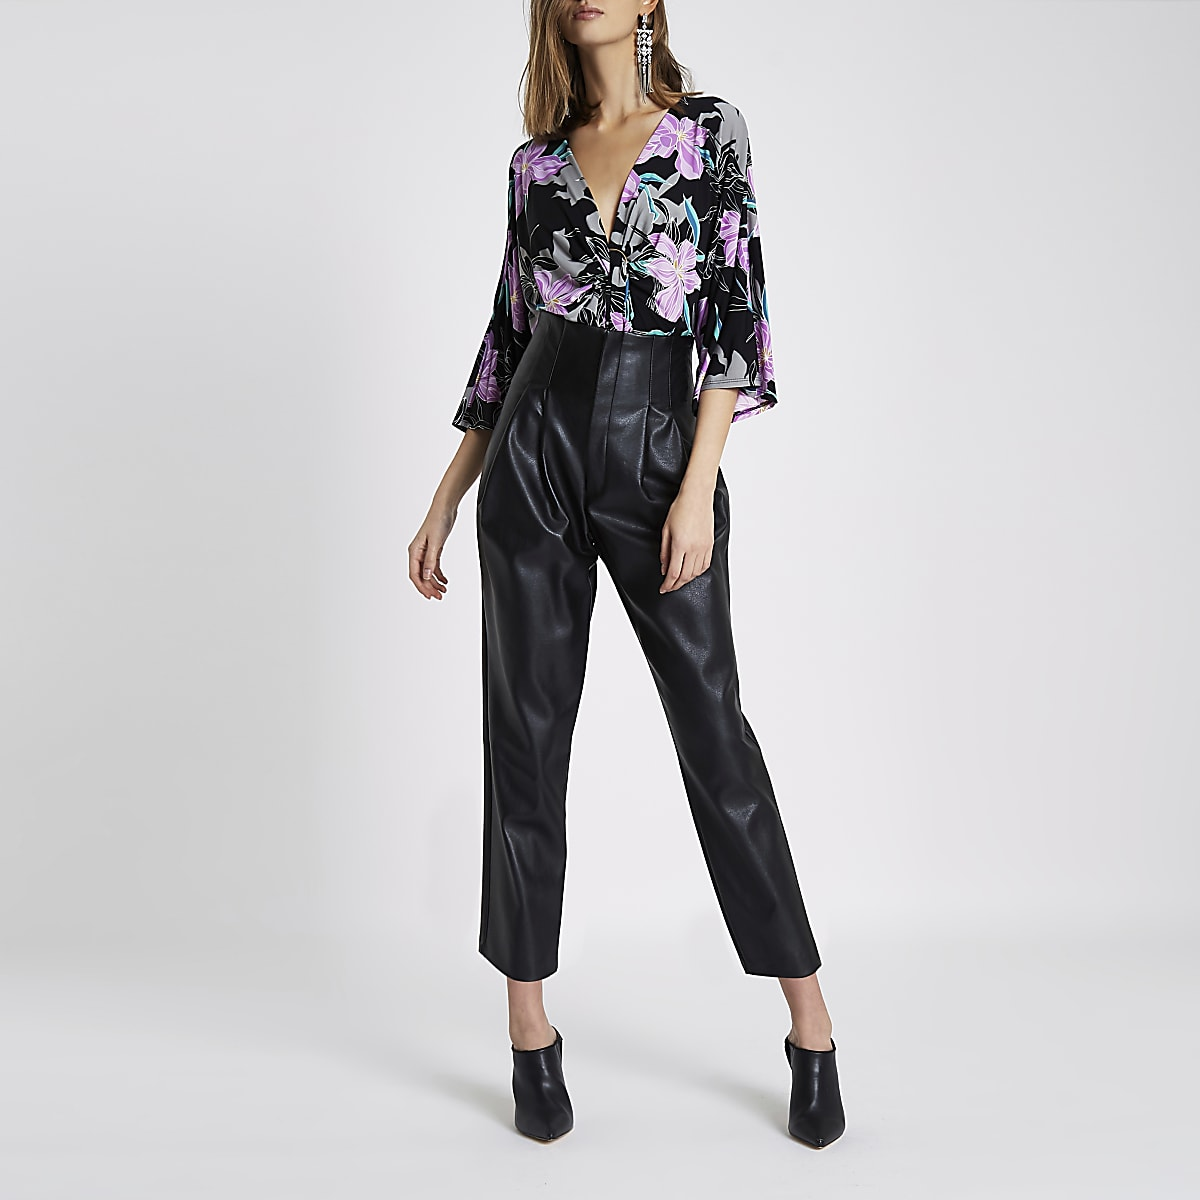 Black floral print ring front bodysuit